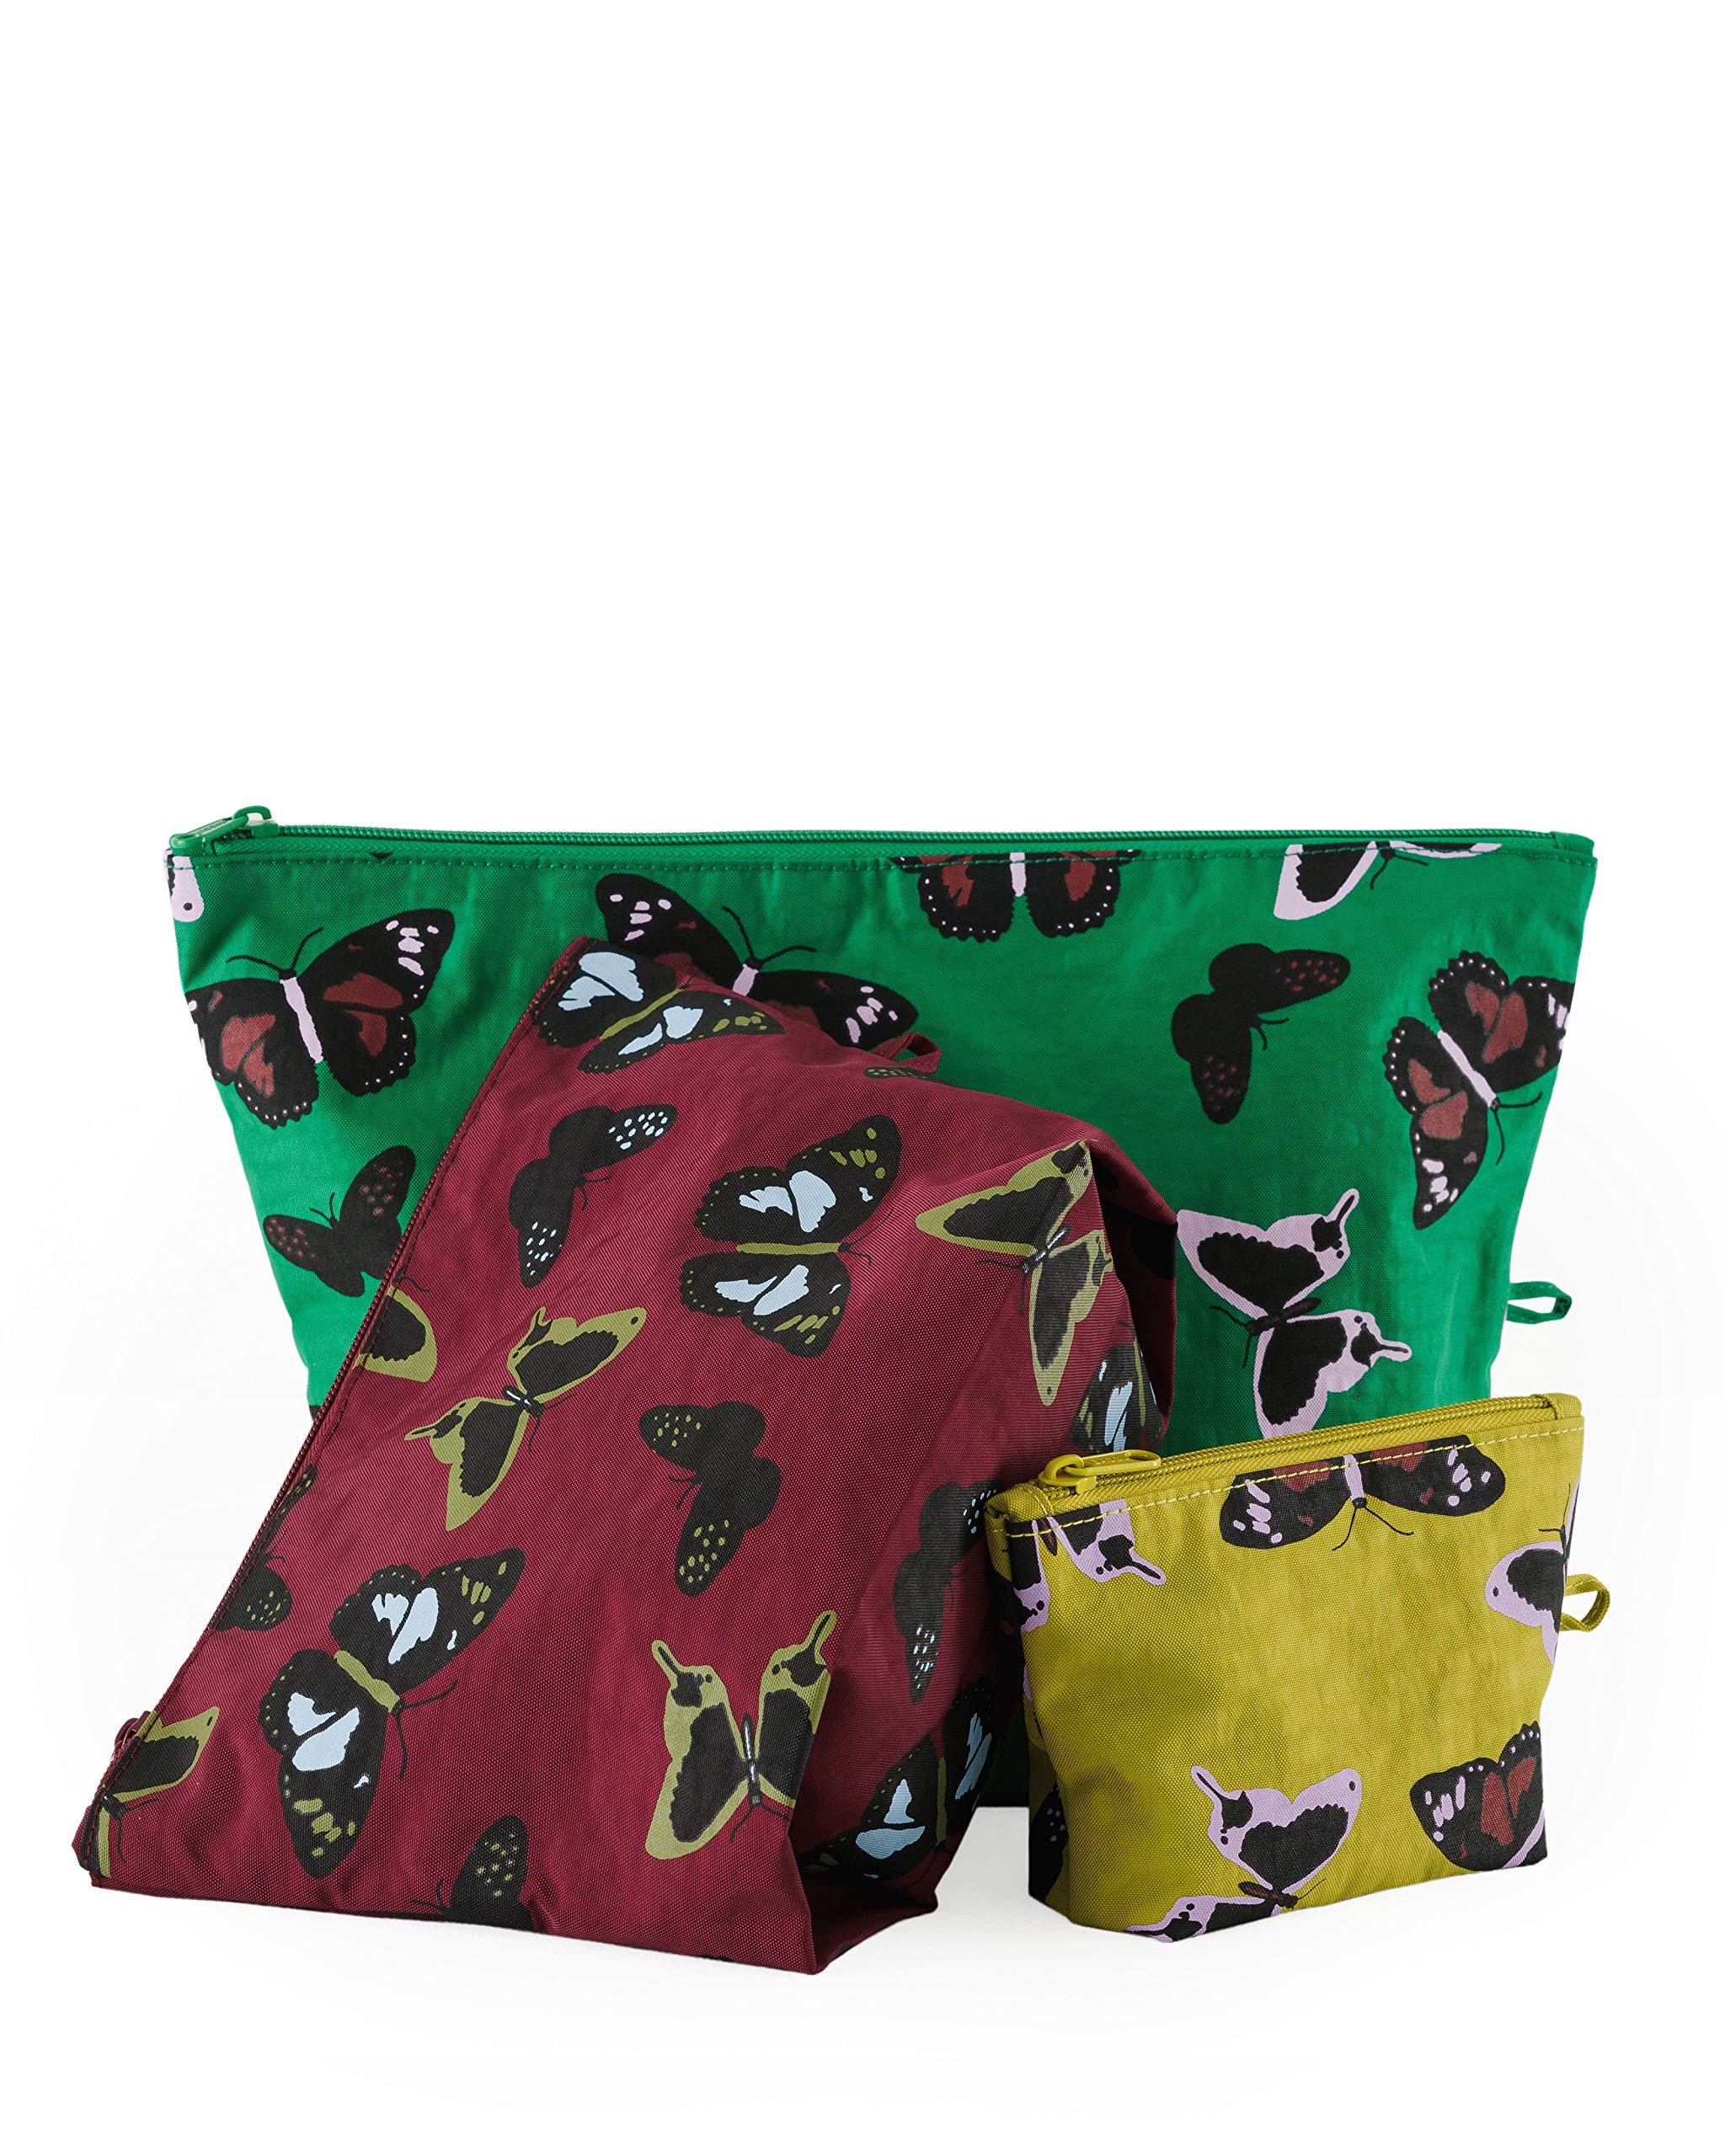 BAGGU Go Pouch Set, Expandable Nylon Zip Pouch 3 Pack for Travel and Organization, Fall Butterfly Set by BAGGU